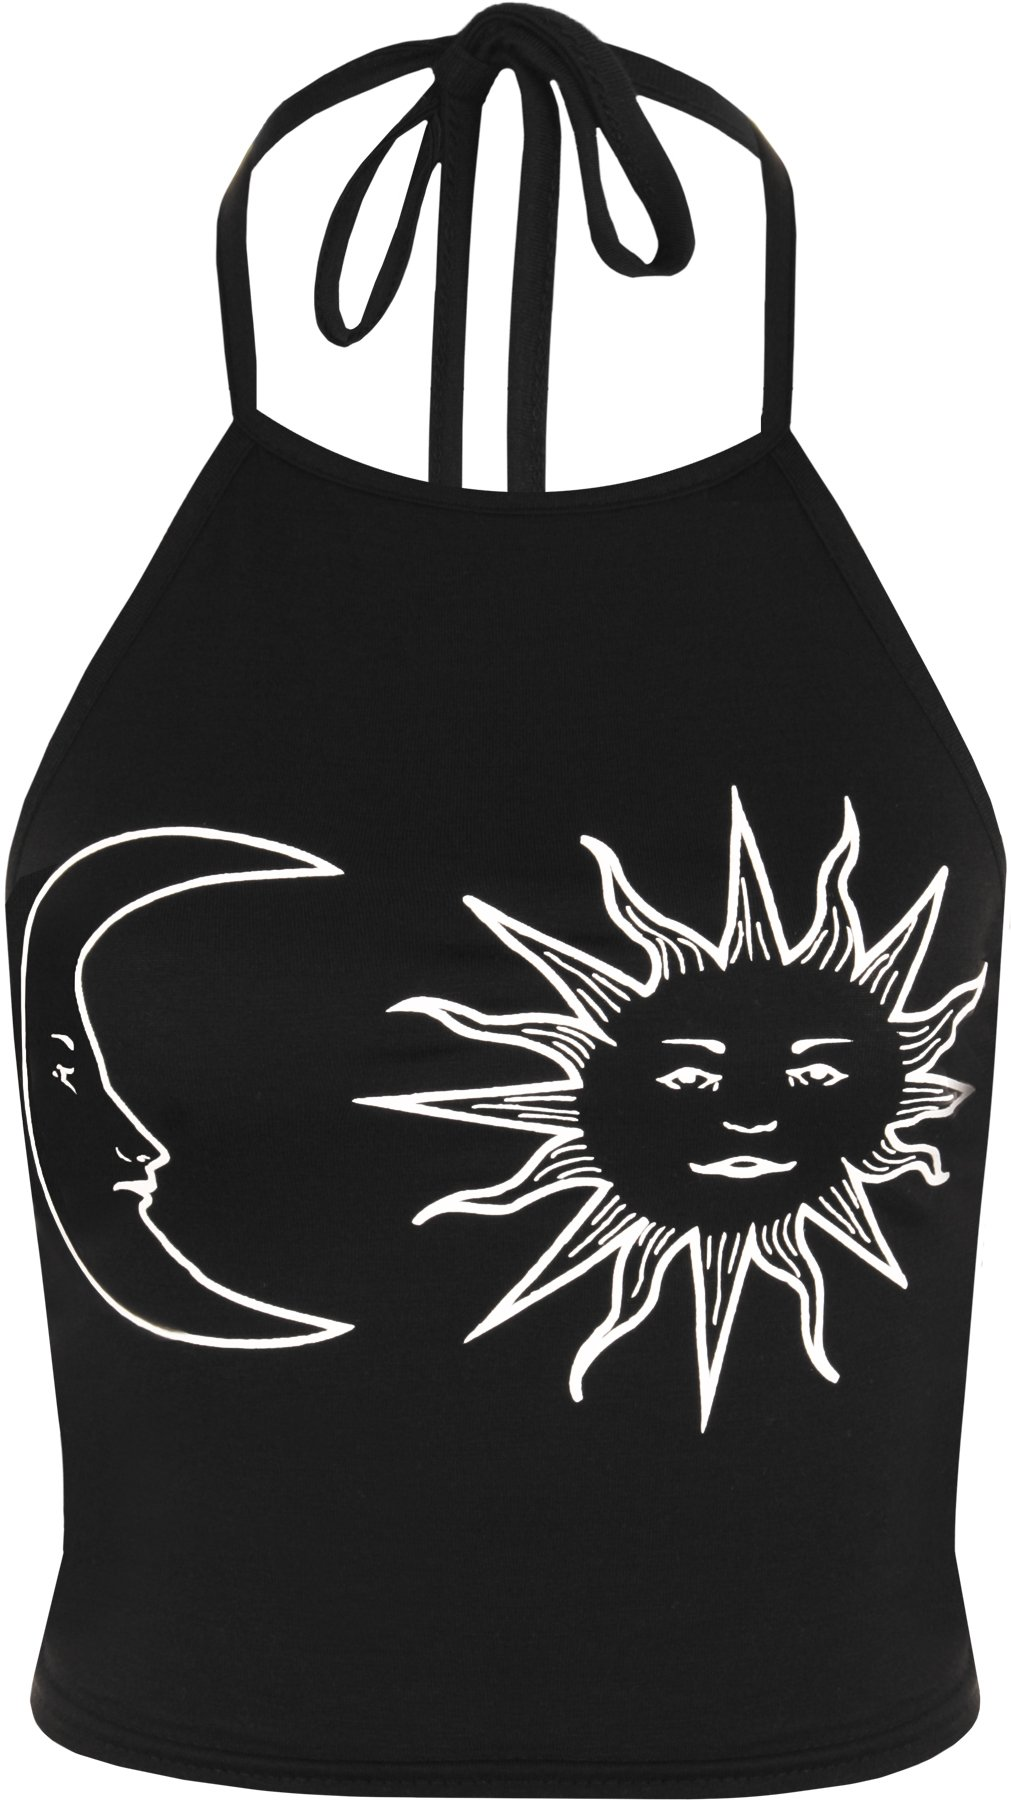 WearAll Women's Sun Moon Print Halter Neck Tied Crop Vest T-Shirt Top - Black White - US 8-10 (UK 12-14)